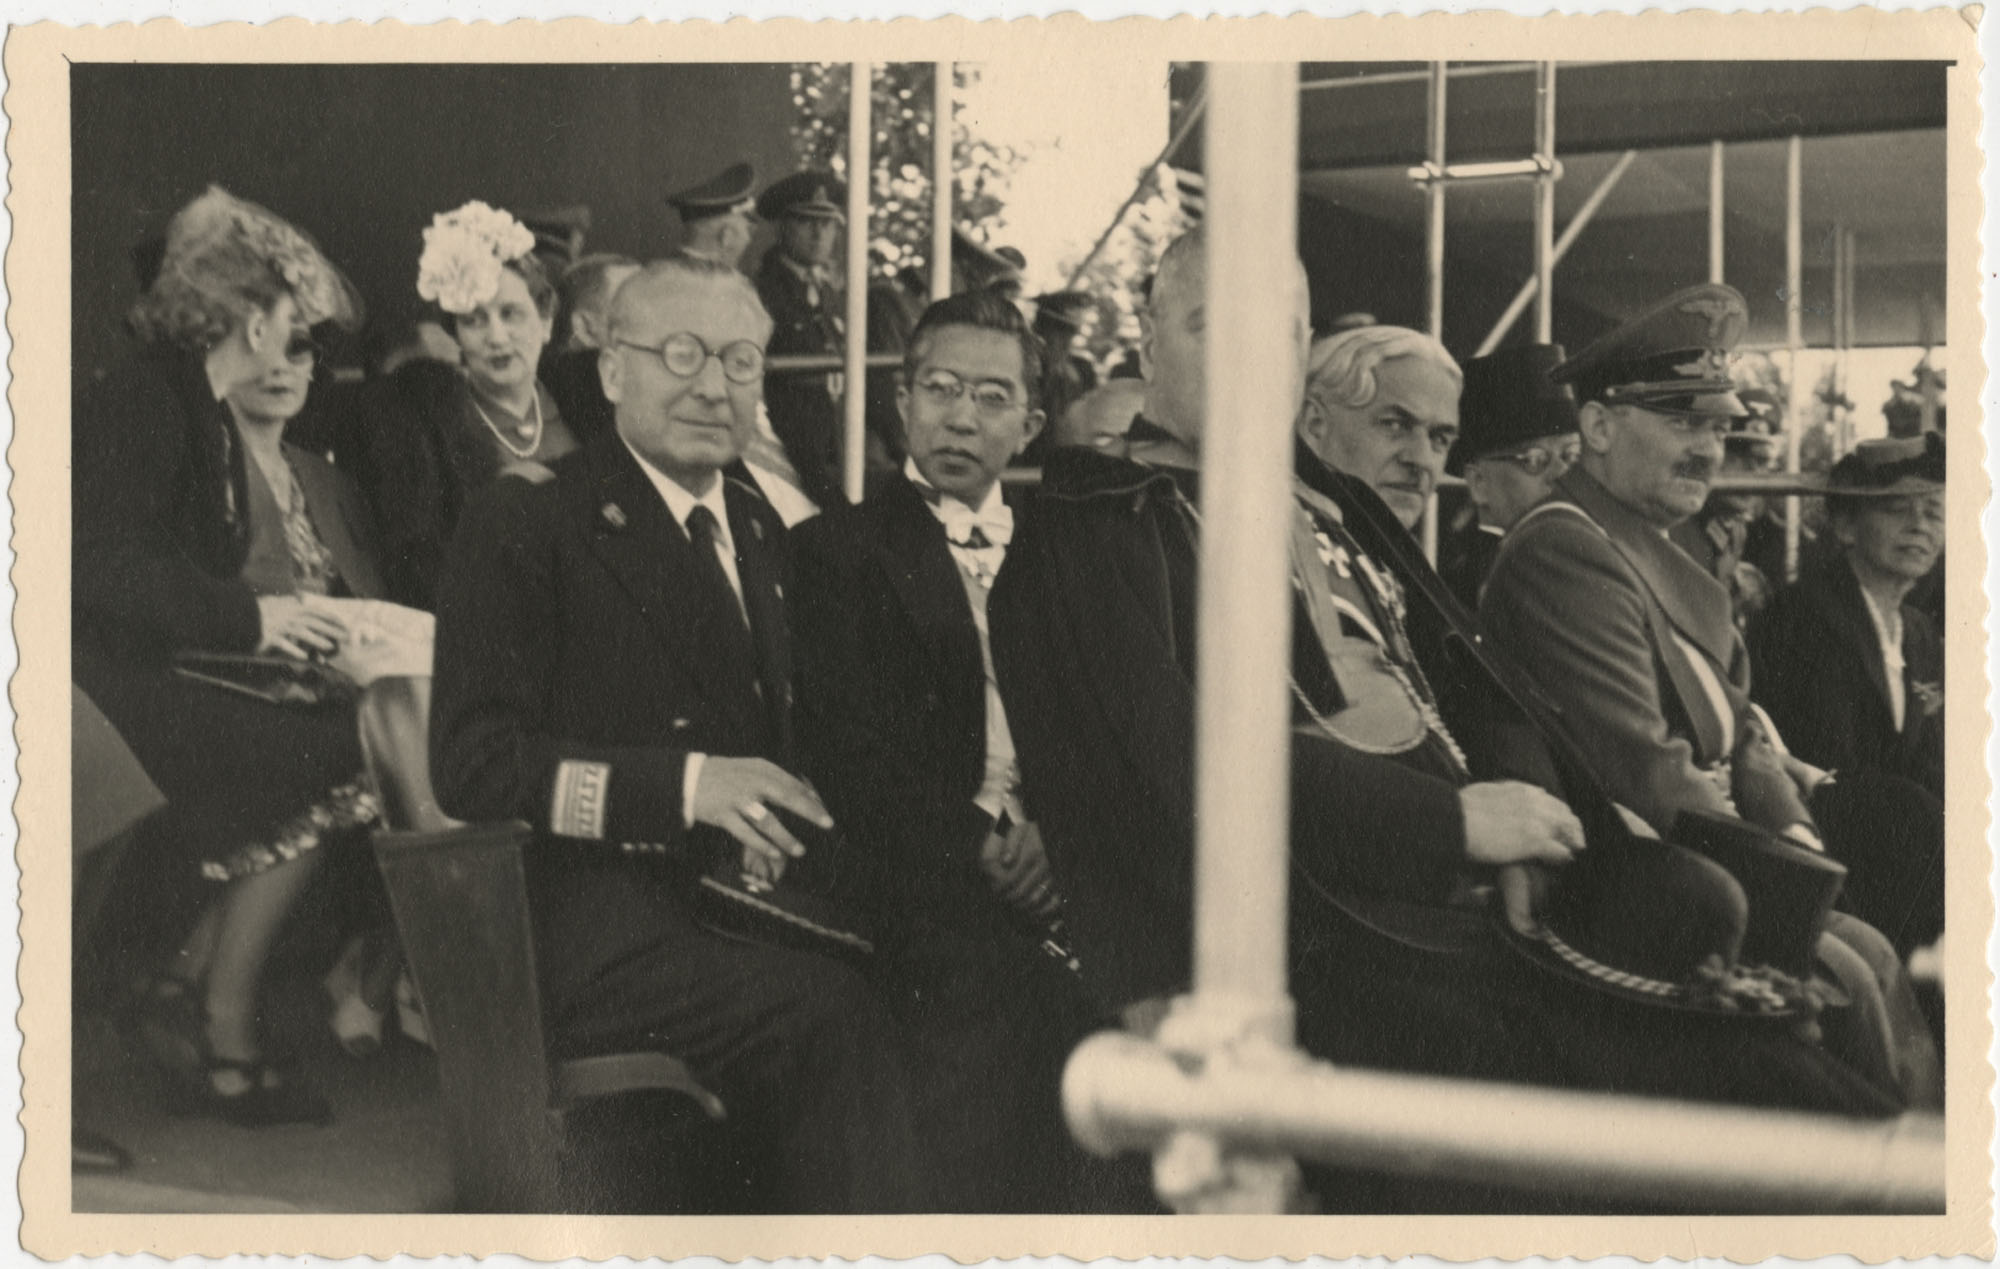 Japanese Emperor Hirohito and other officials observing a military ceremony, Photograph 1